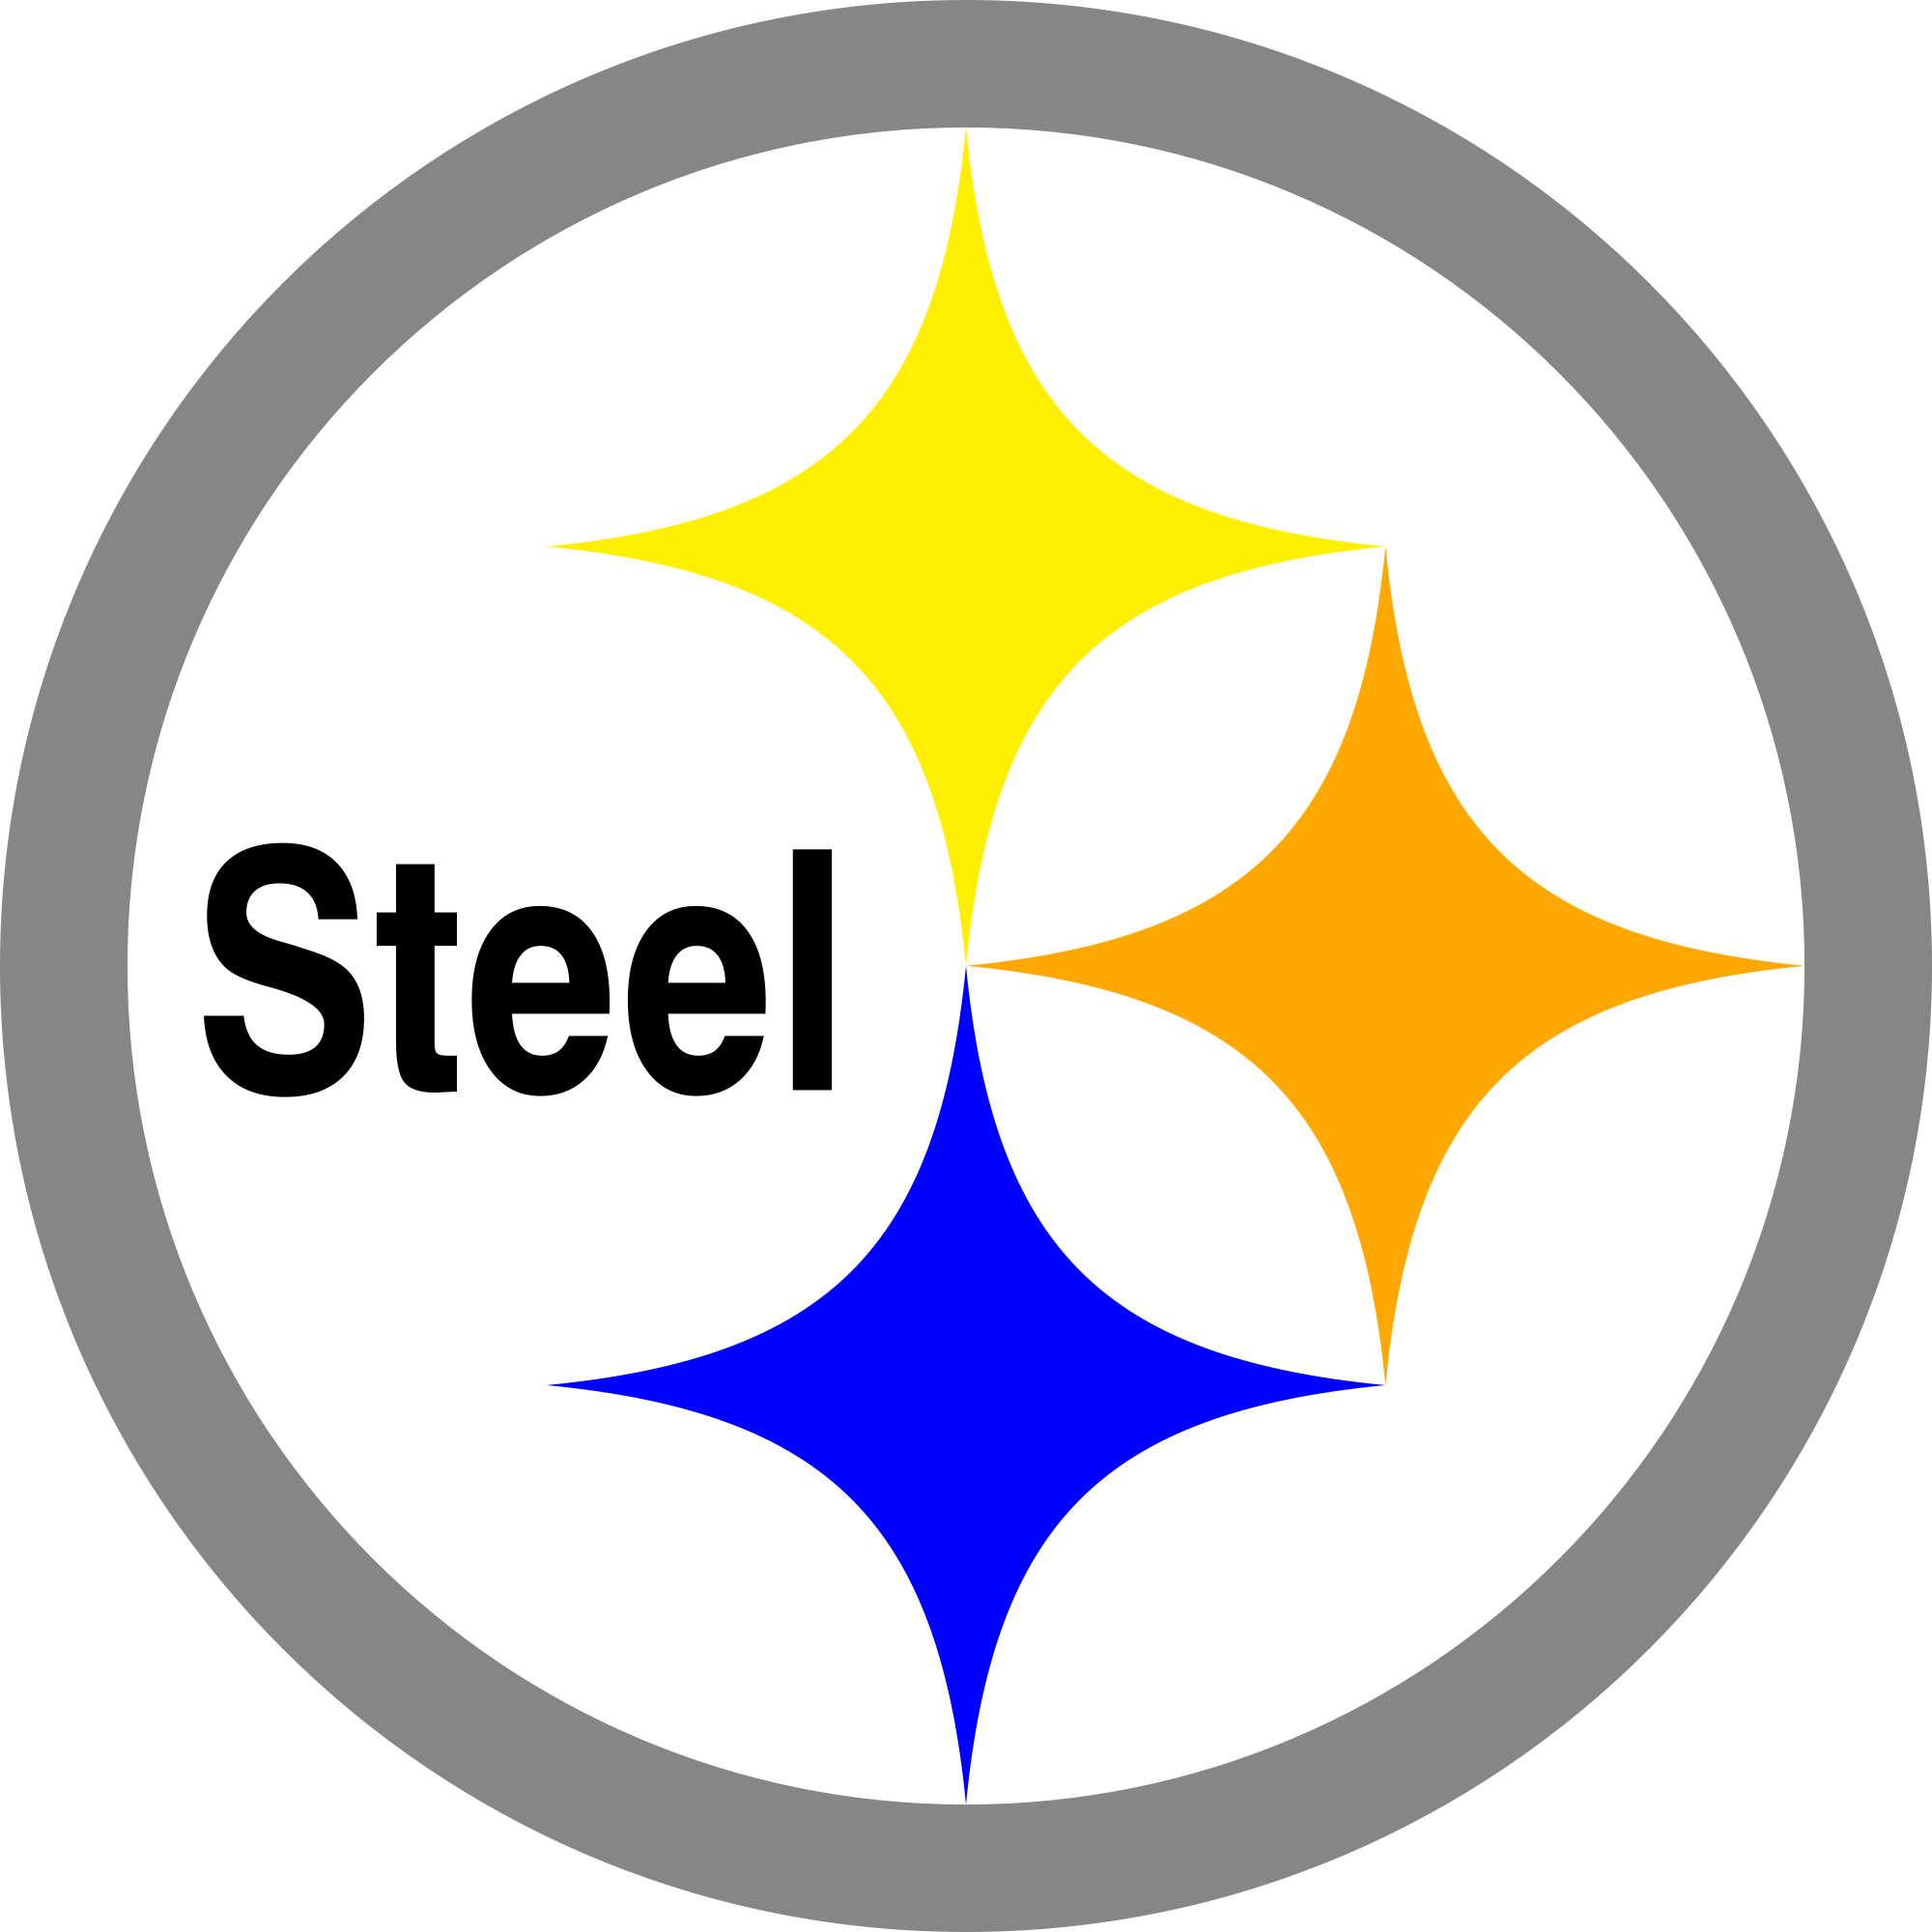 Steelers vector pittsburgh. File steelmark logo svg